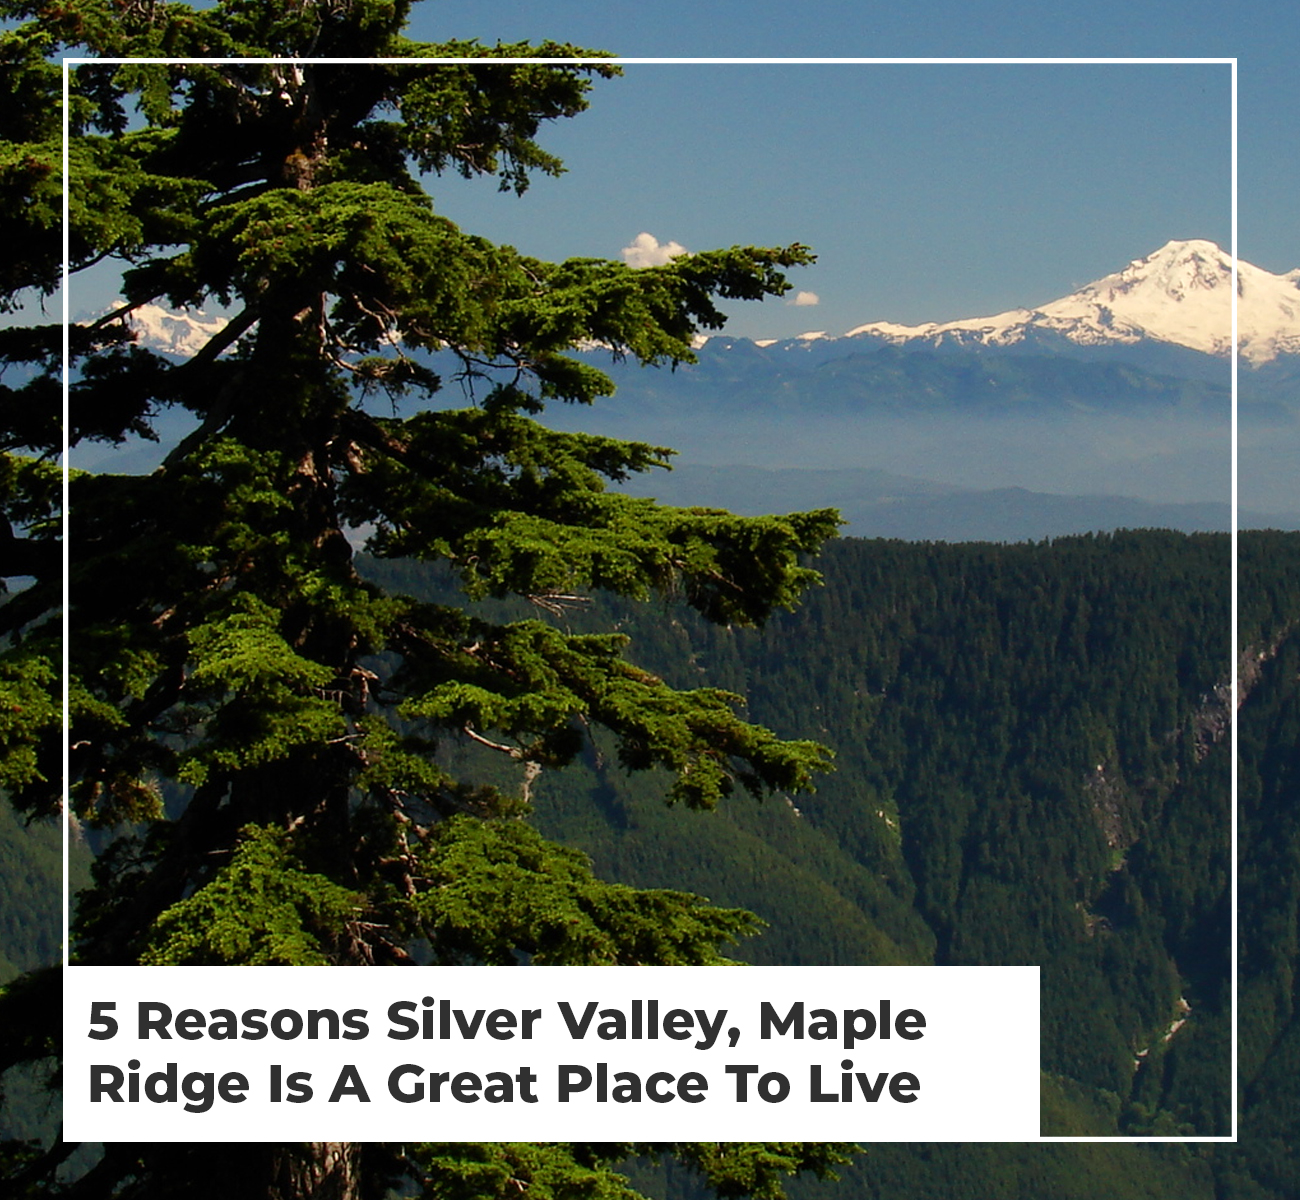 5 Reasons Silver Valley, Maple Ridge is a Great Place to Live